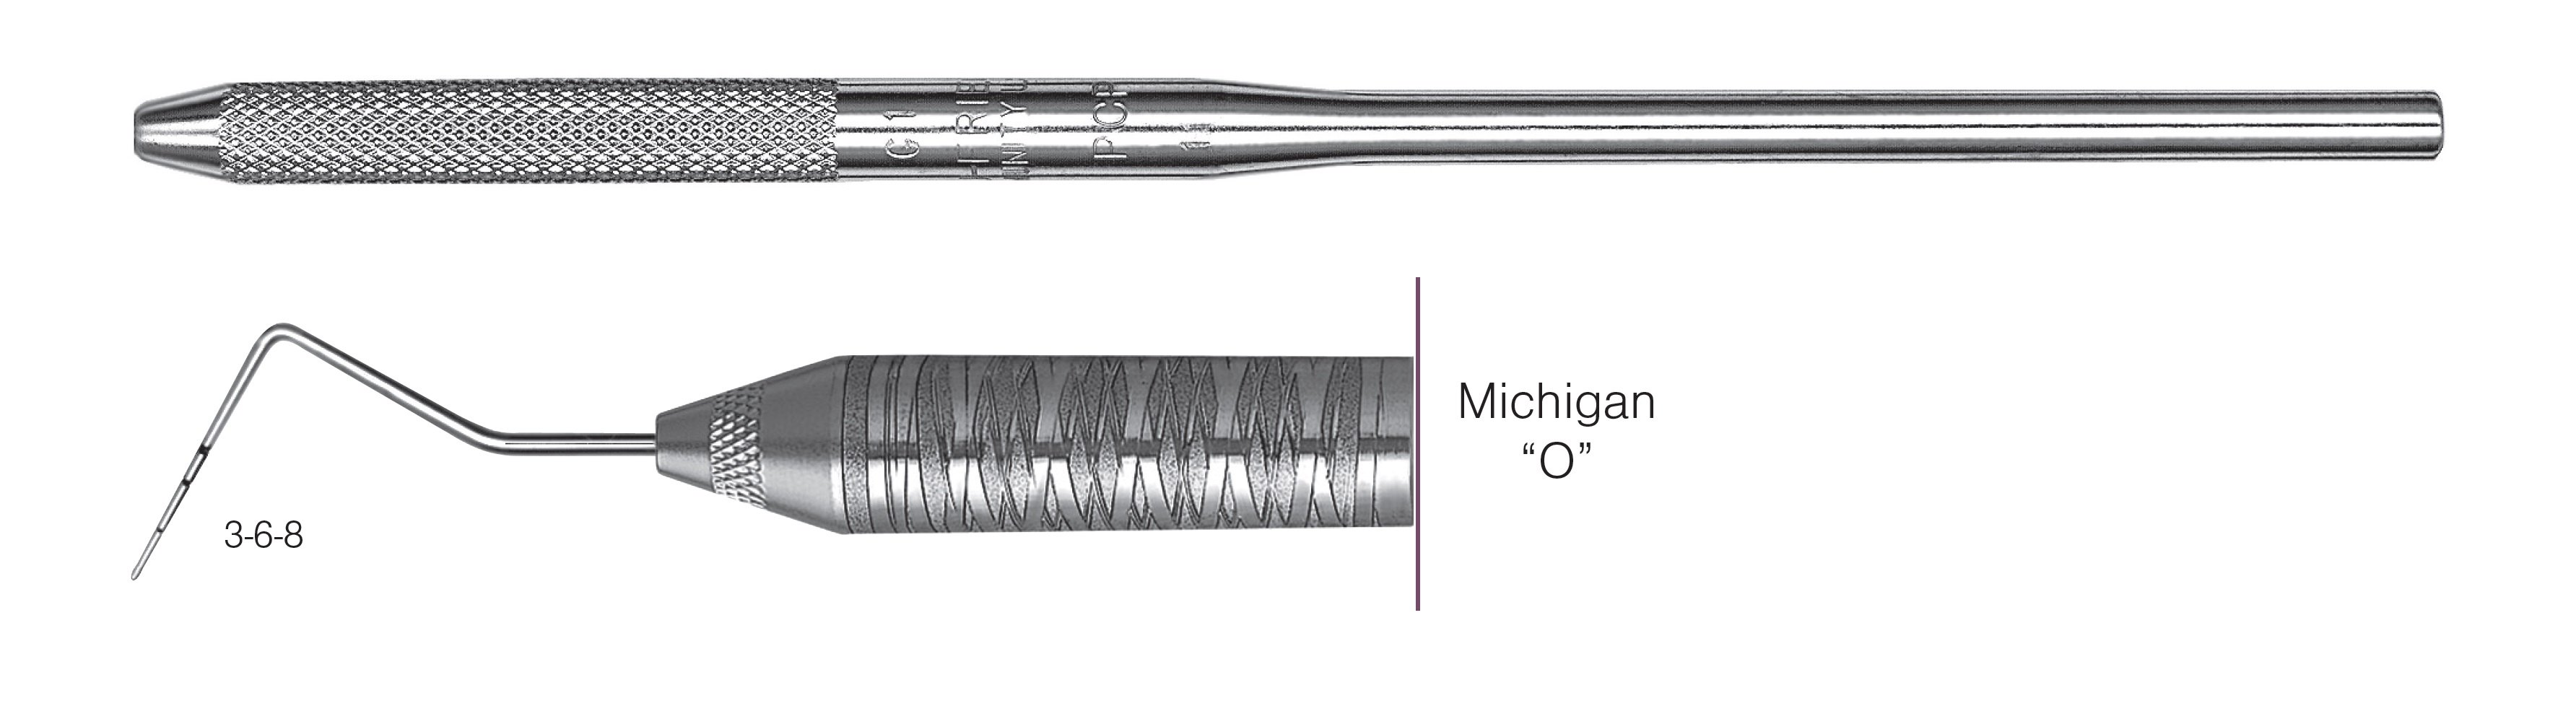 "HF-PO6-30, SINGLE-ENDED PROBES Michigan ""O"", Black markings, 3-6-8 mm, Handle round, Single End"